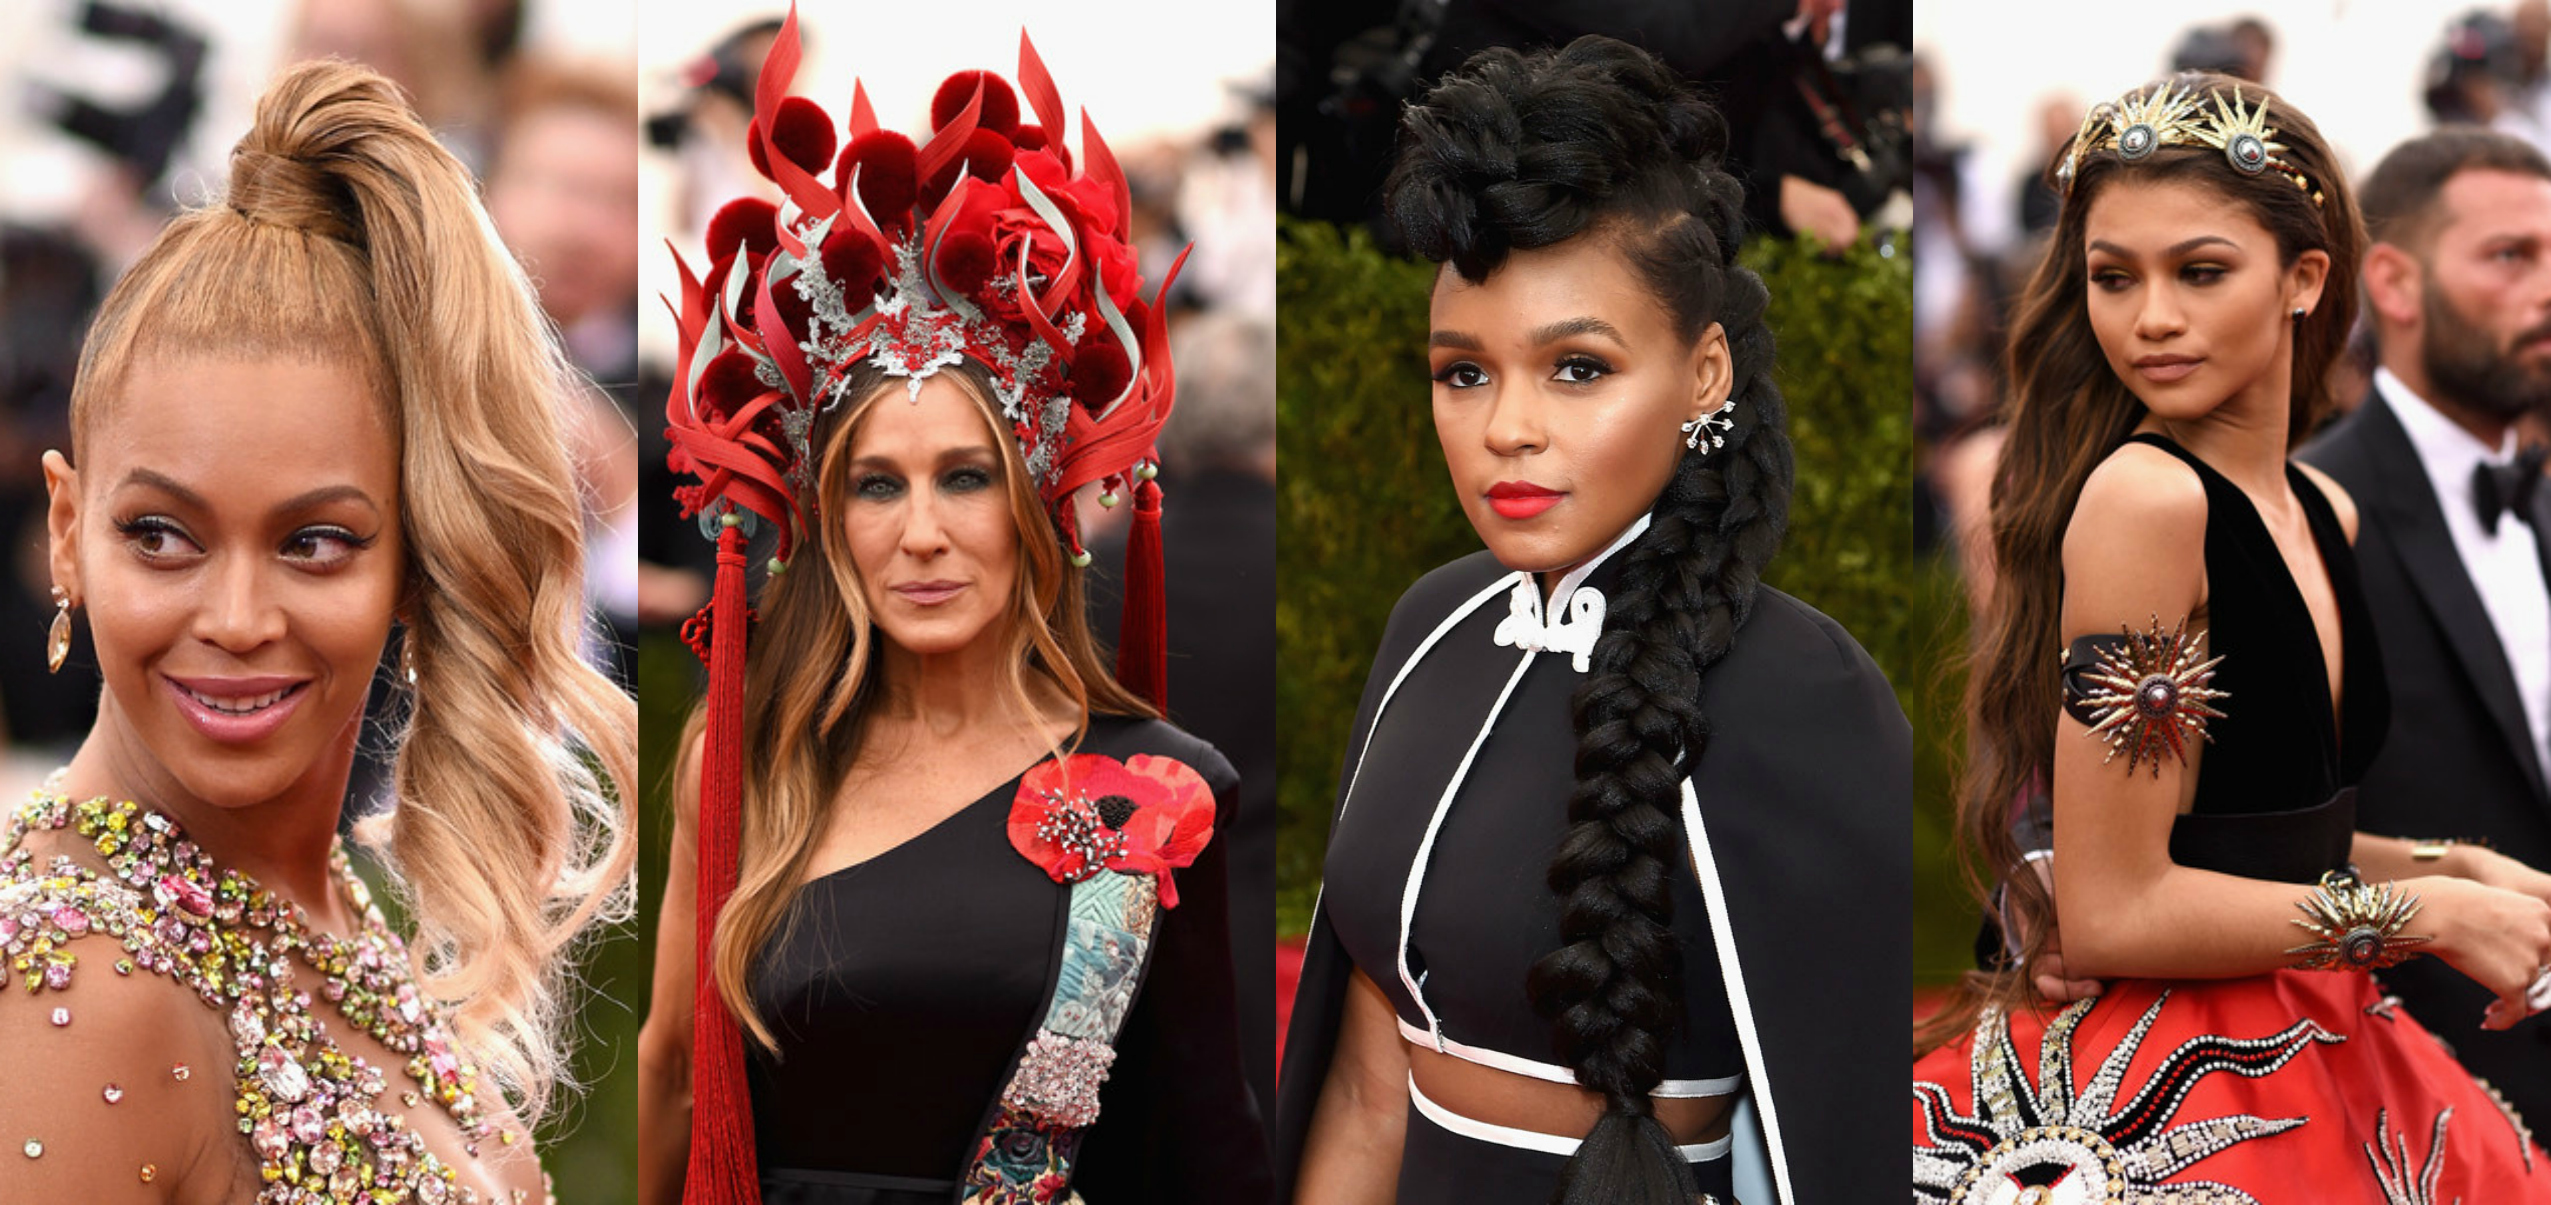 Headpieces and Hairstyles At 2015 Met Gala